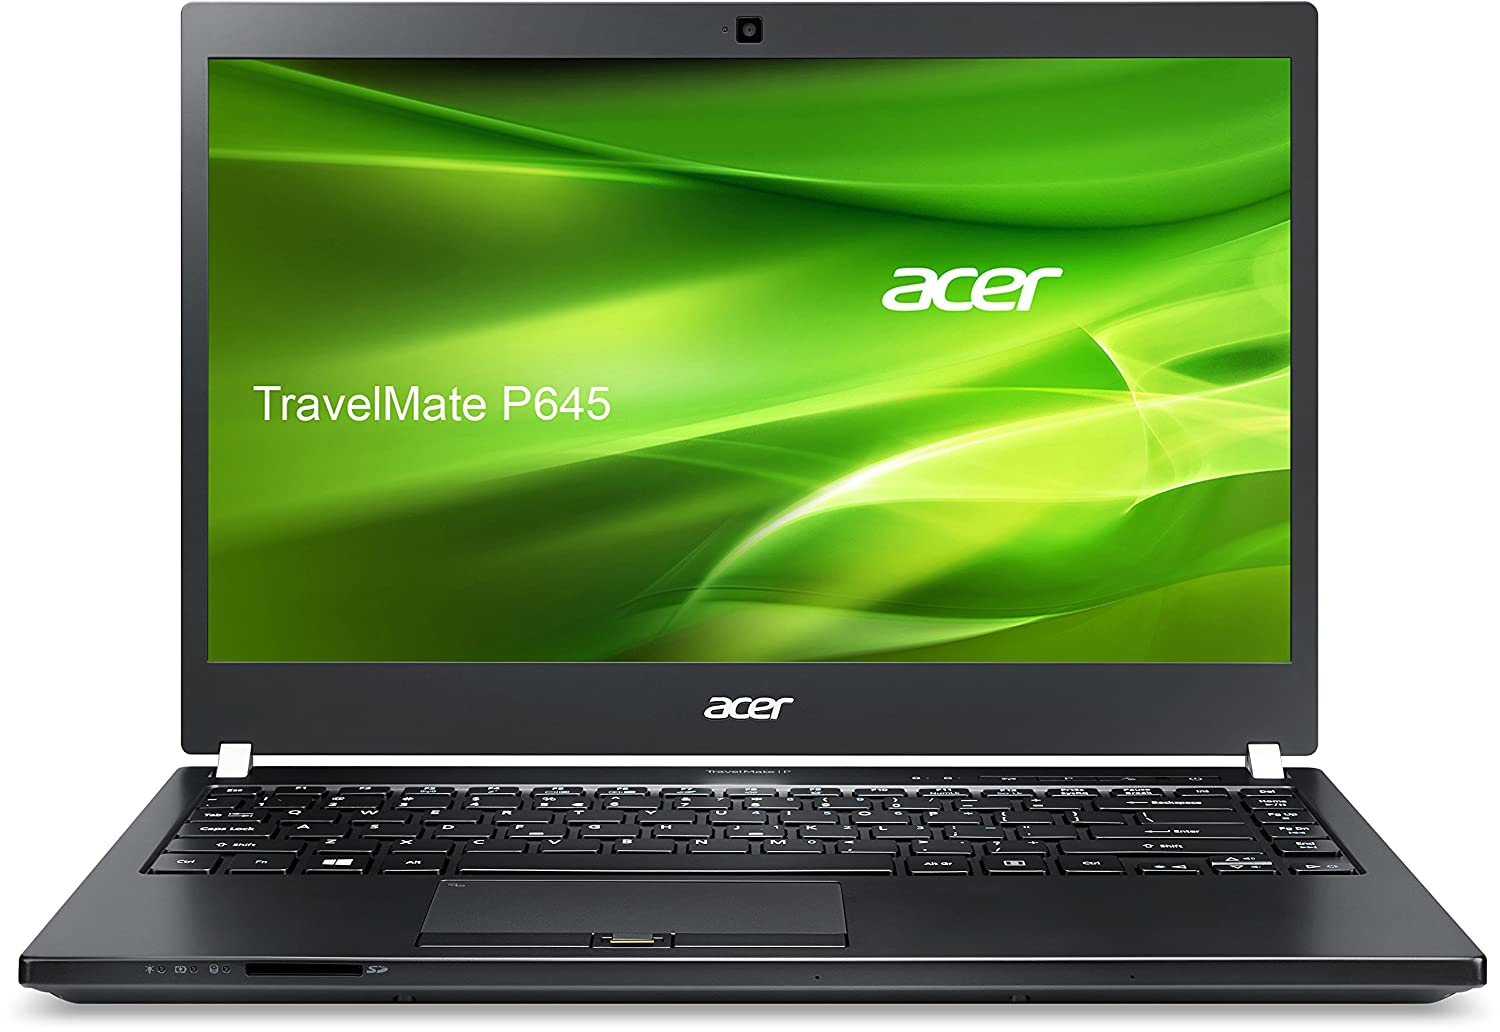 Acer Notebook amazon